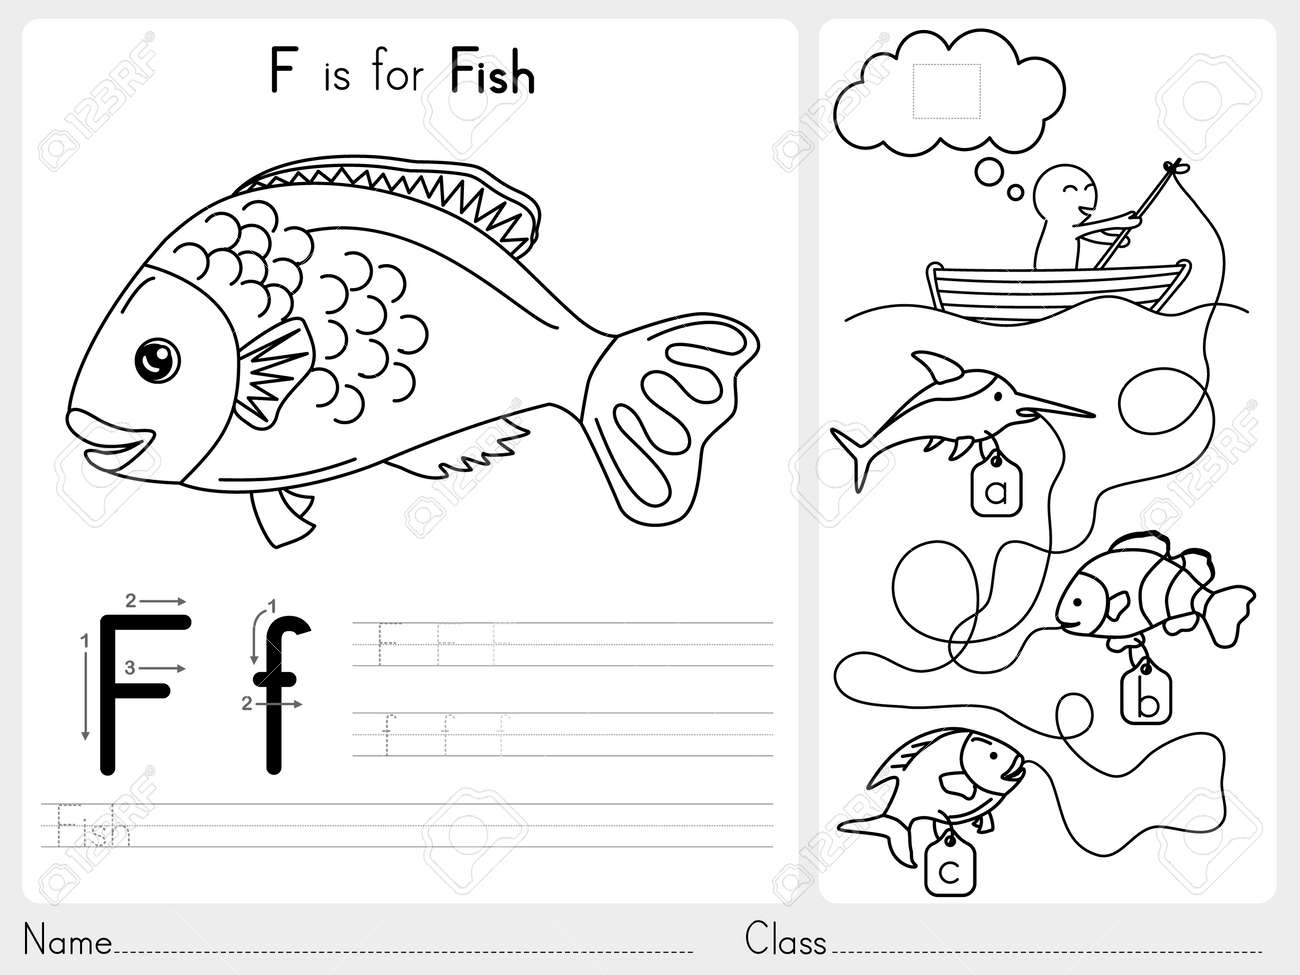 Alphabet pages for coloring book - Alphabet A Z Tracing And Puzzle Worksheet Exercises For Kids Coloring Book Illustration And